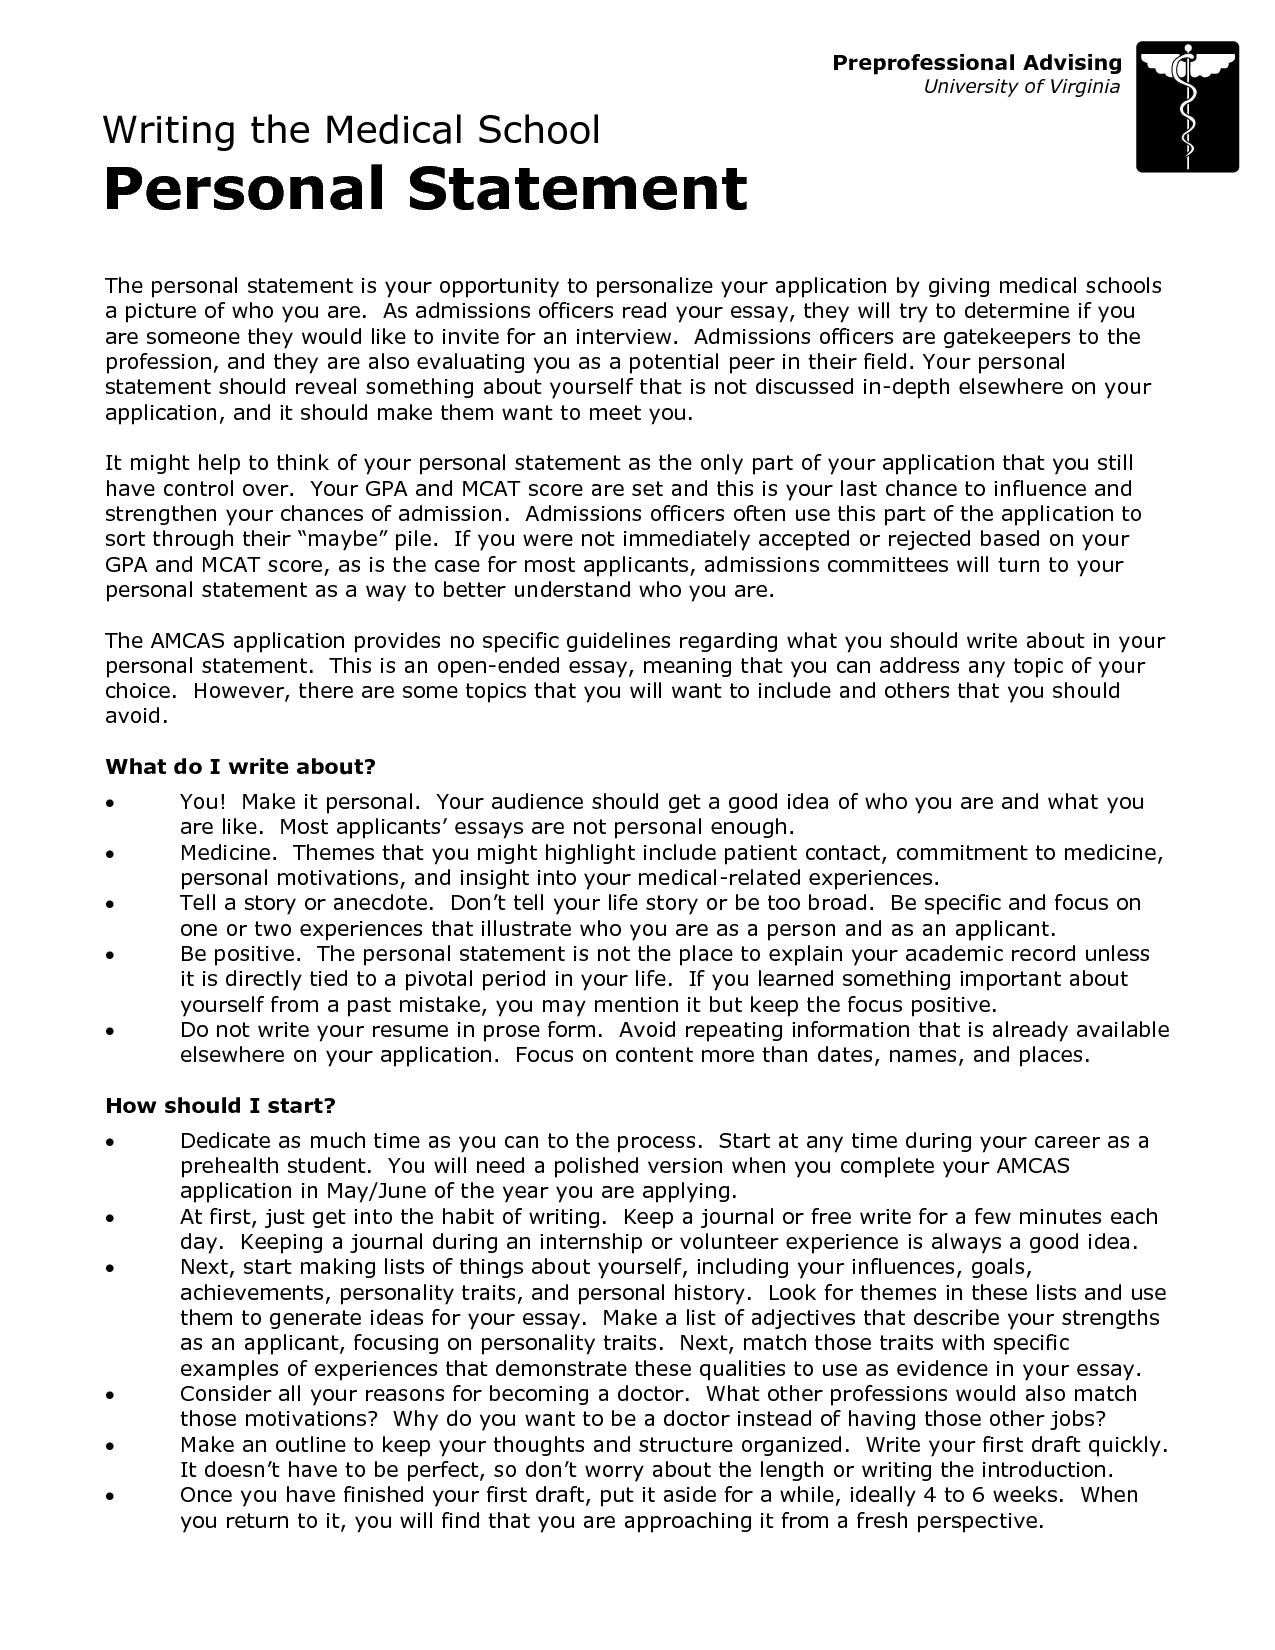 help writing a personal statement for college Get a spot at the college of your dreams from the most professional custom writing company on the web purchase custom written personal statement at termpaperwriterorg at reasonable prices.